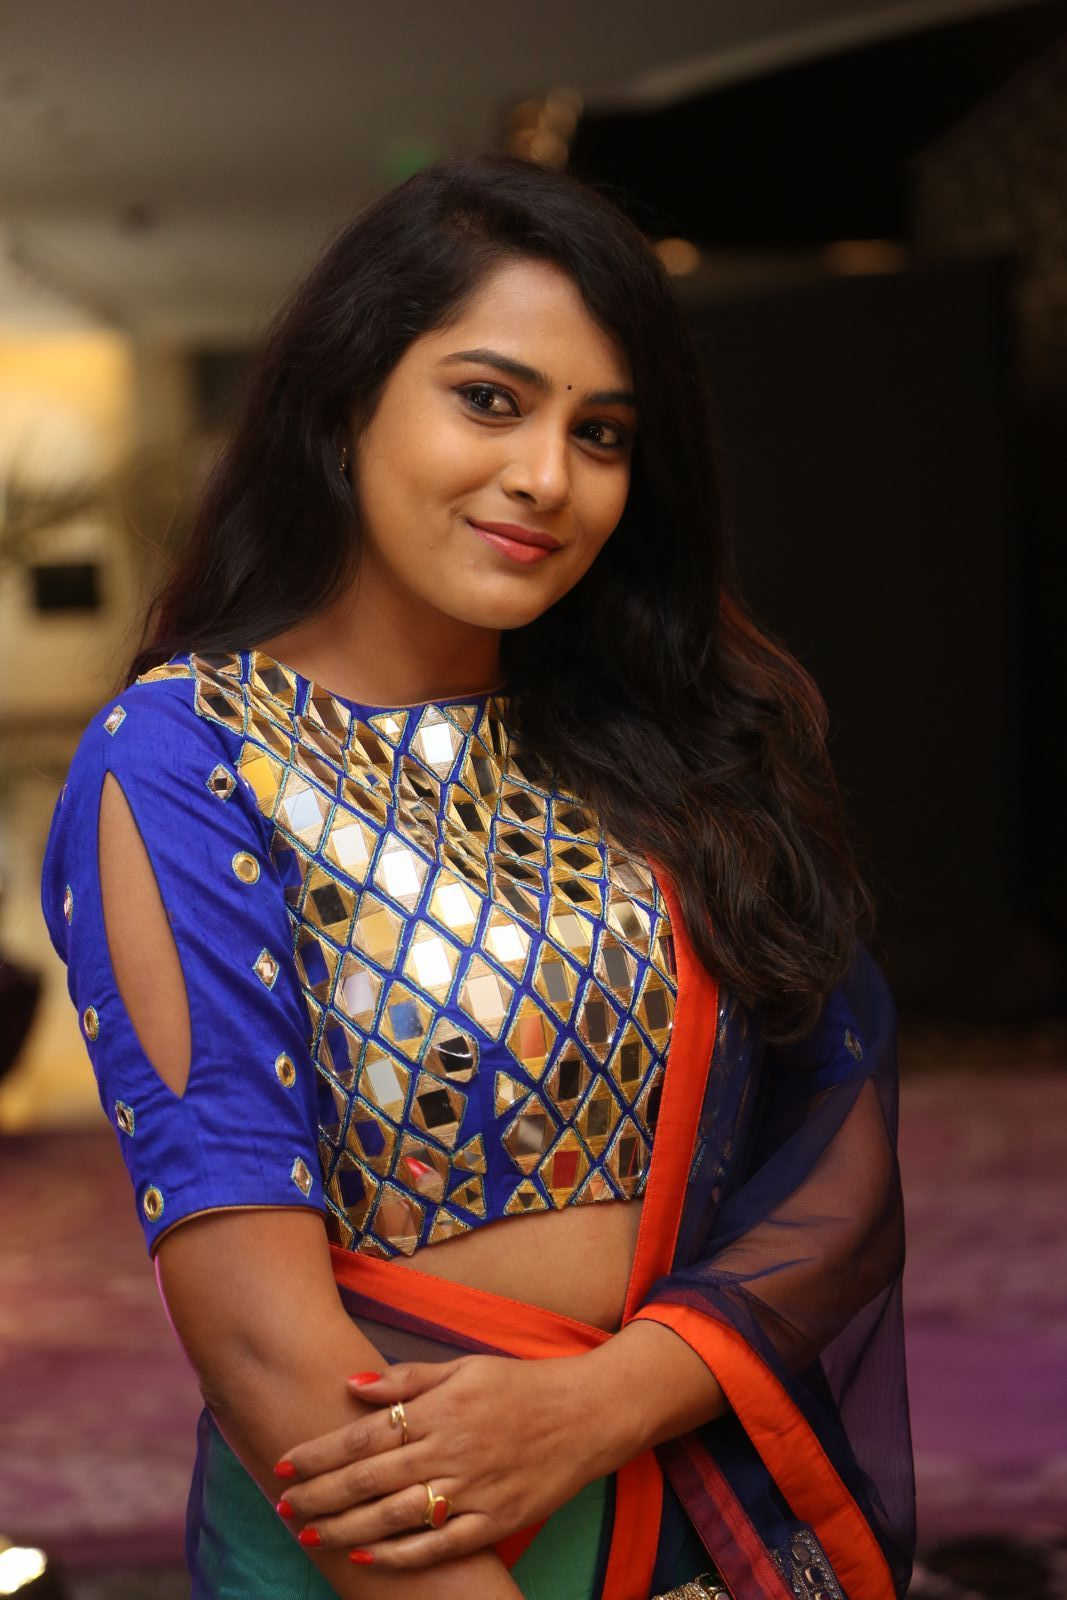 himaza Brand New Photo Stills of Tollywood Actress Himaza | South Actresses Himaza 71